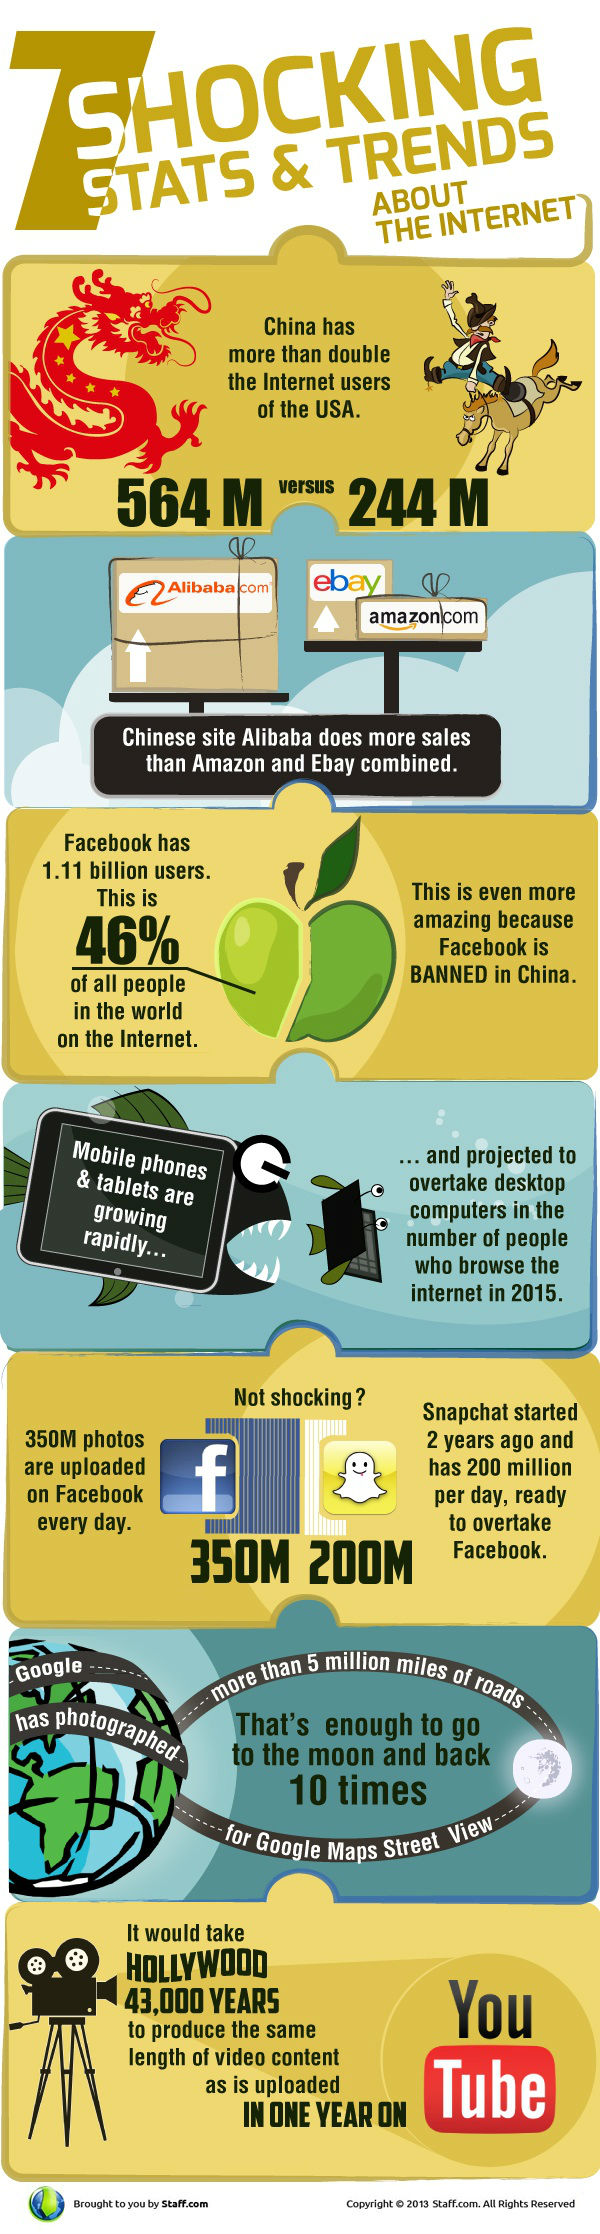 Shocking Stats and Trends of the Internet [Infographic]